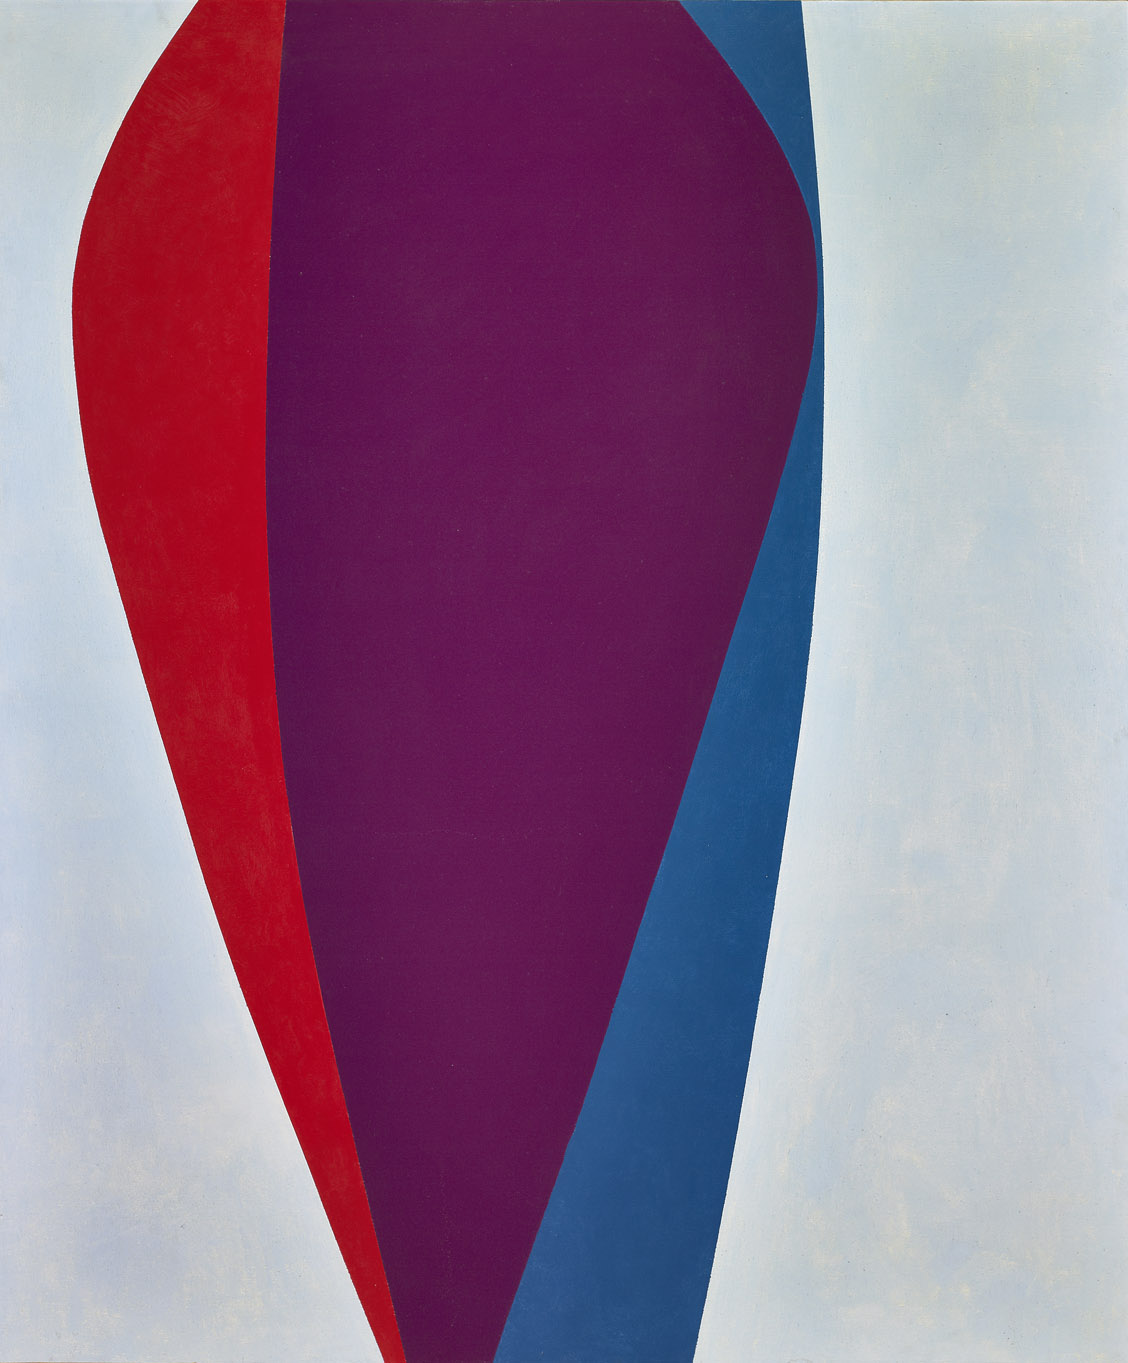 Untitled , 1963  oil and enamel on canvas 72 x 60 inches; 182.9 x 152.4 centimeters